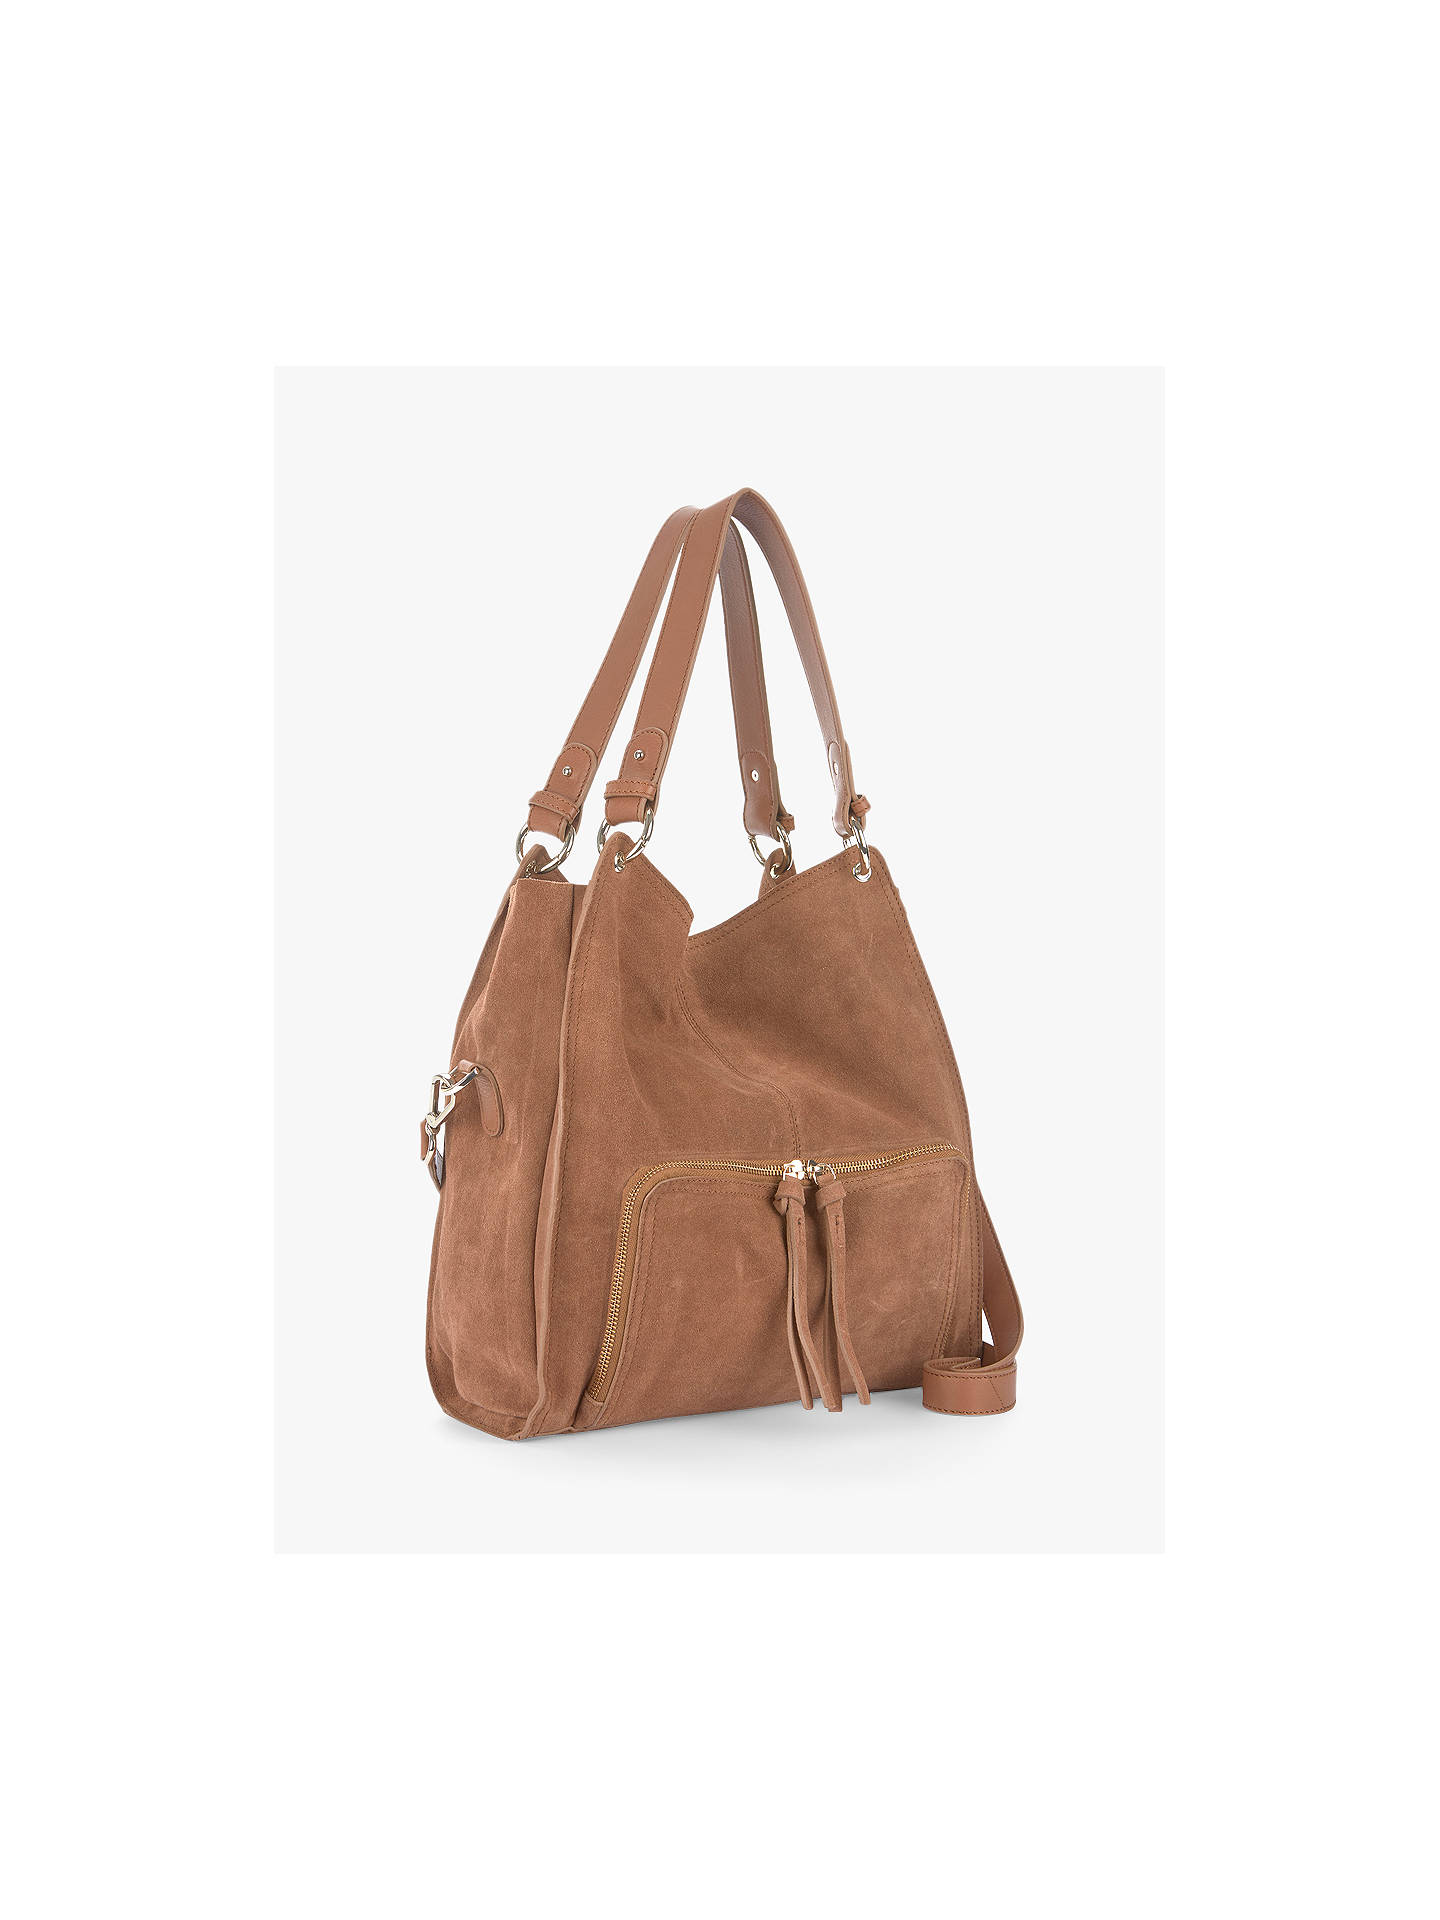 272fb1663f0514 Buy Mint Velvet Nelly Leather Slouch Tote Bag, Brown Online at  johnlewis.com ...